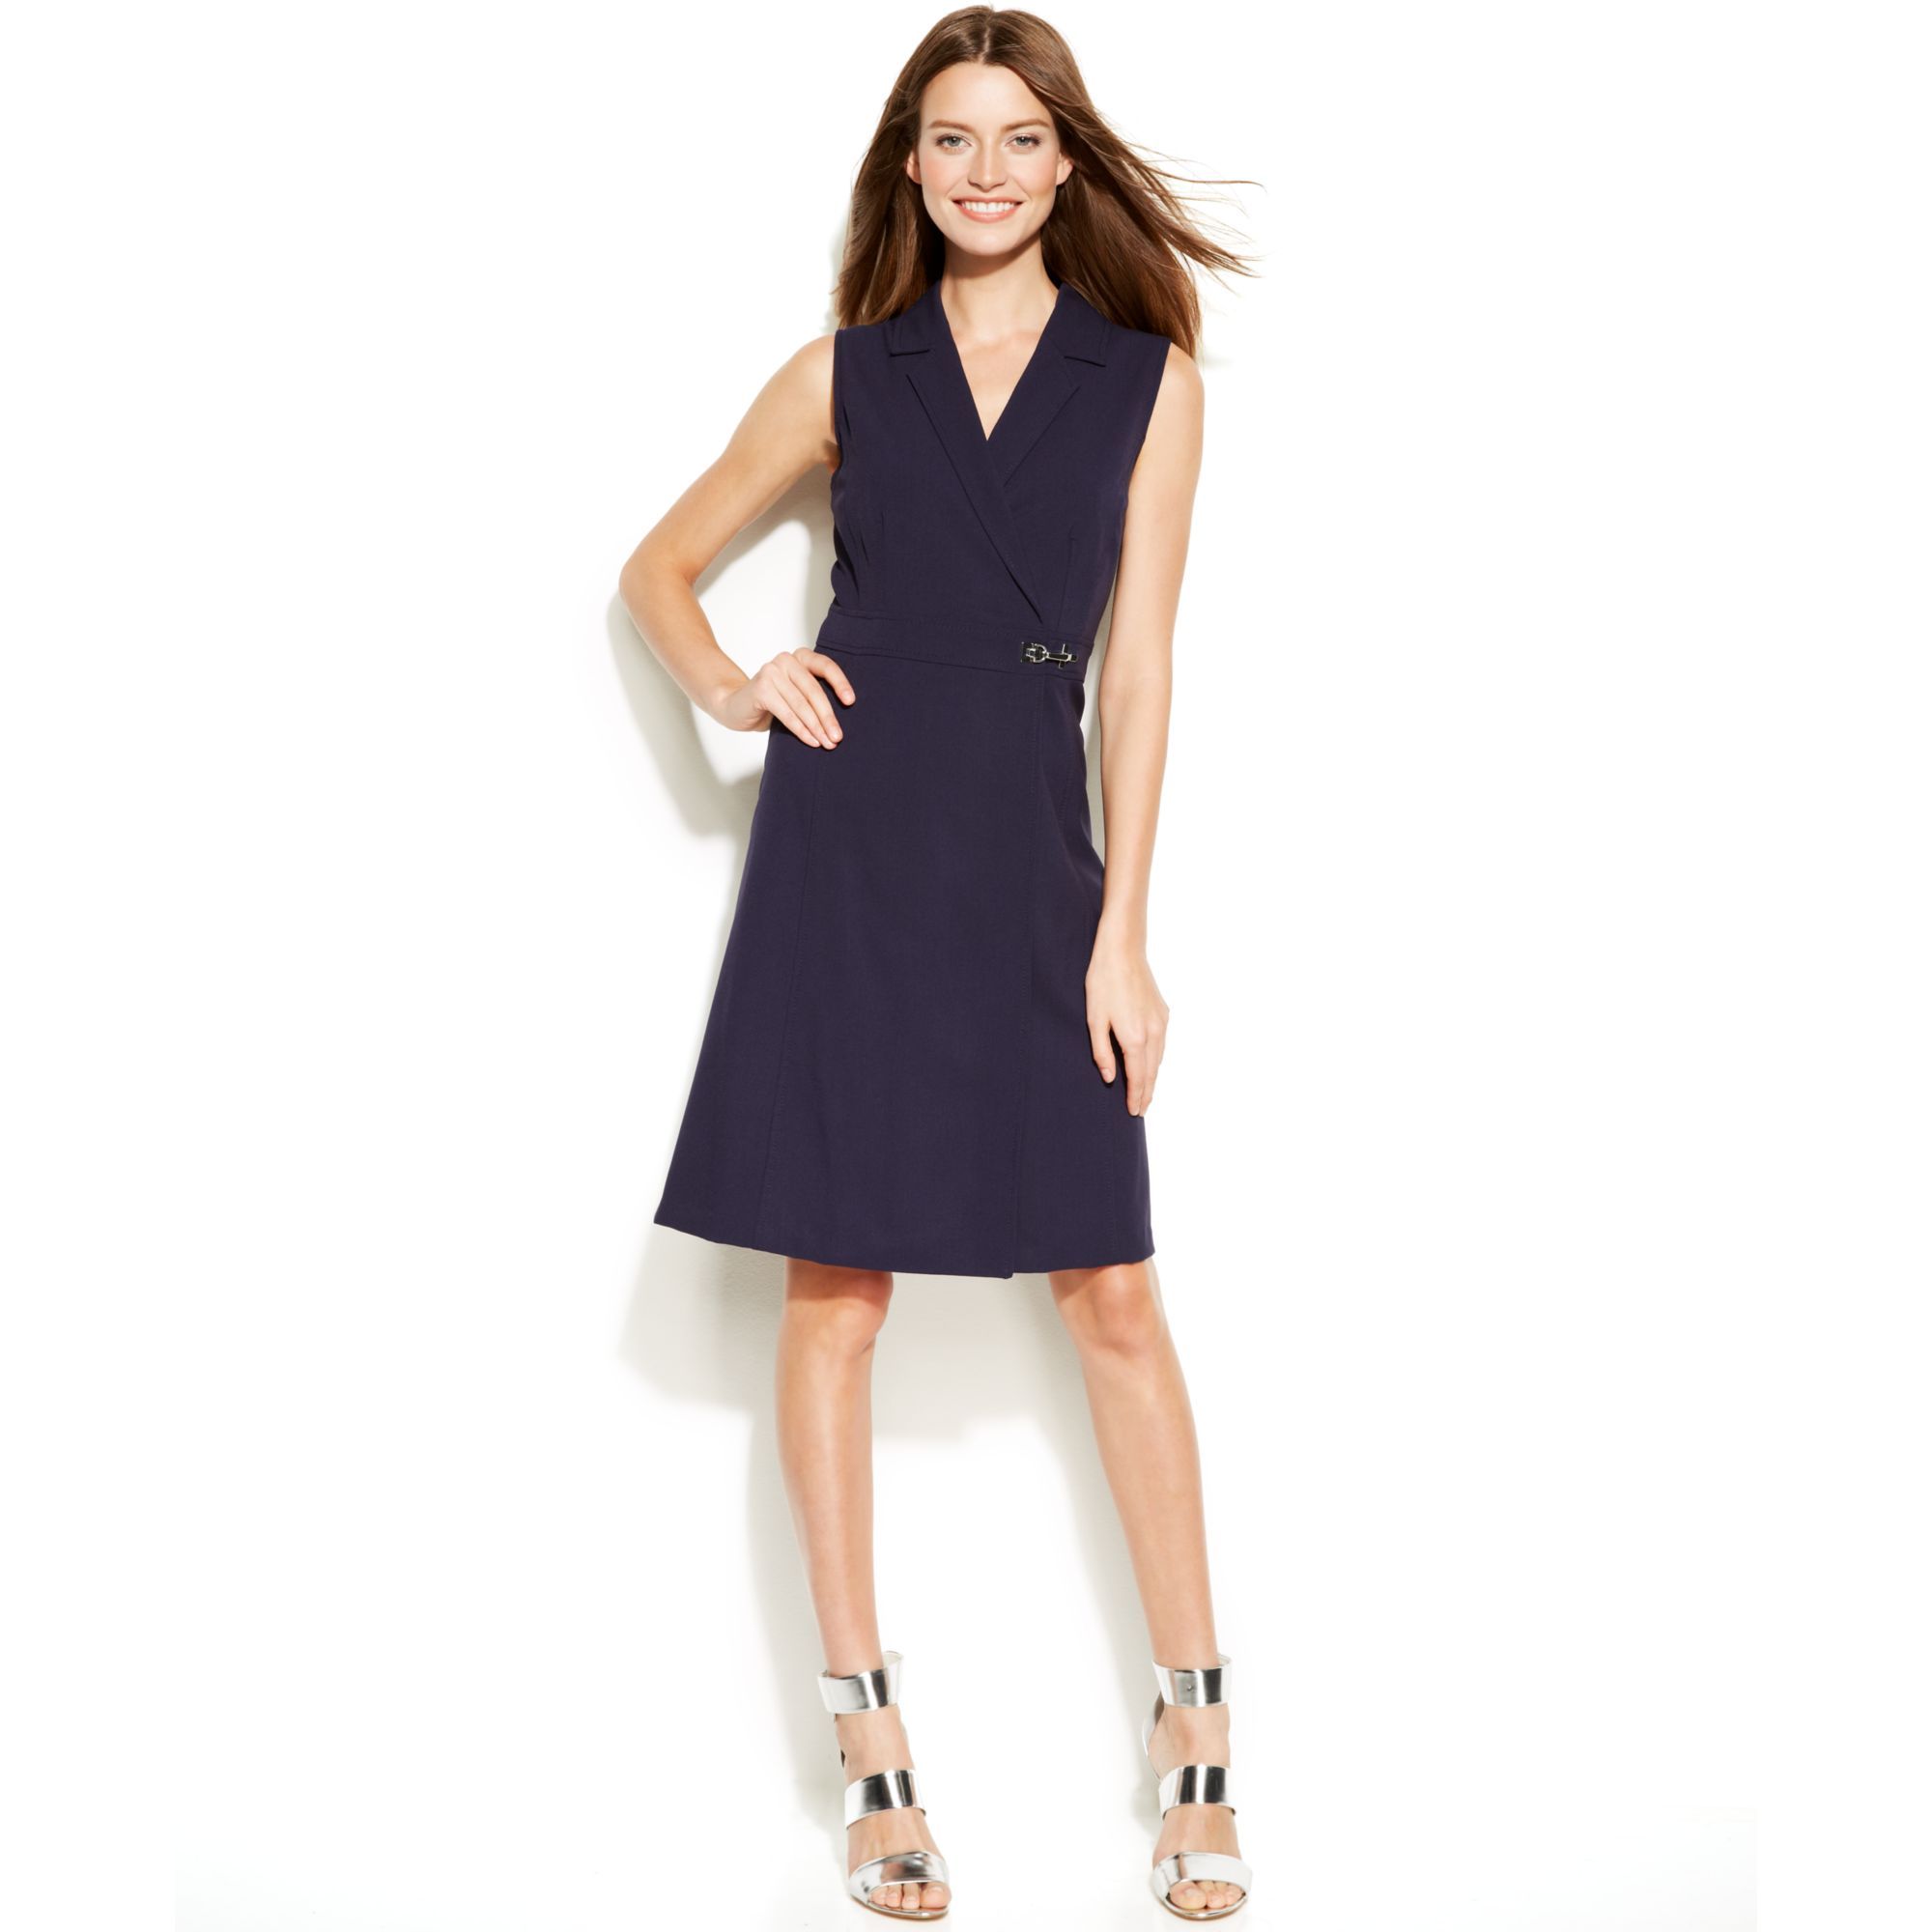 Macy's - FREE Shipping at plpost.ml Macy's has the latest fashion brands on Women's and Men's Clothing, Accessories, Jewelry, Beauty, Shoes and Home Products.